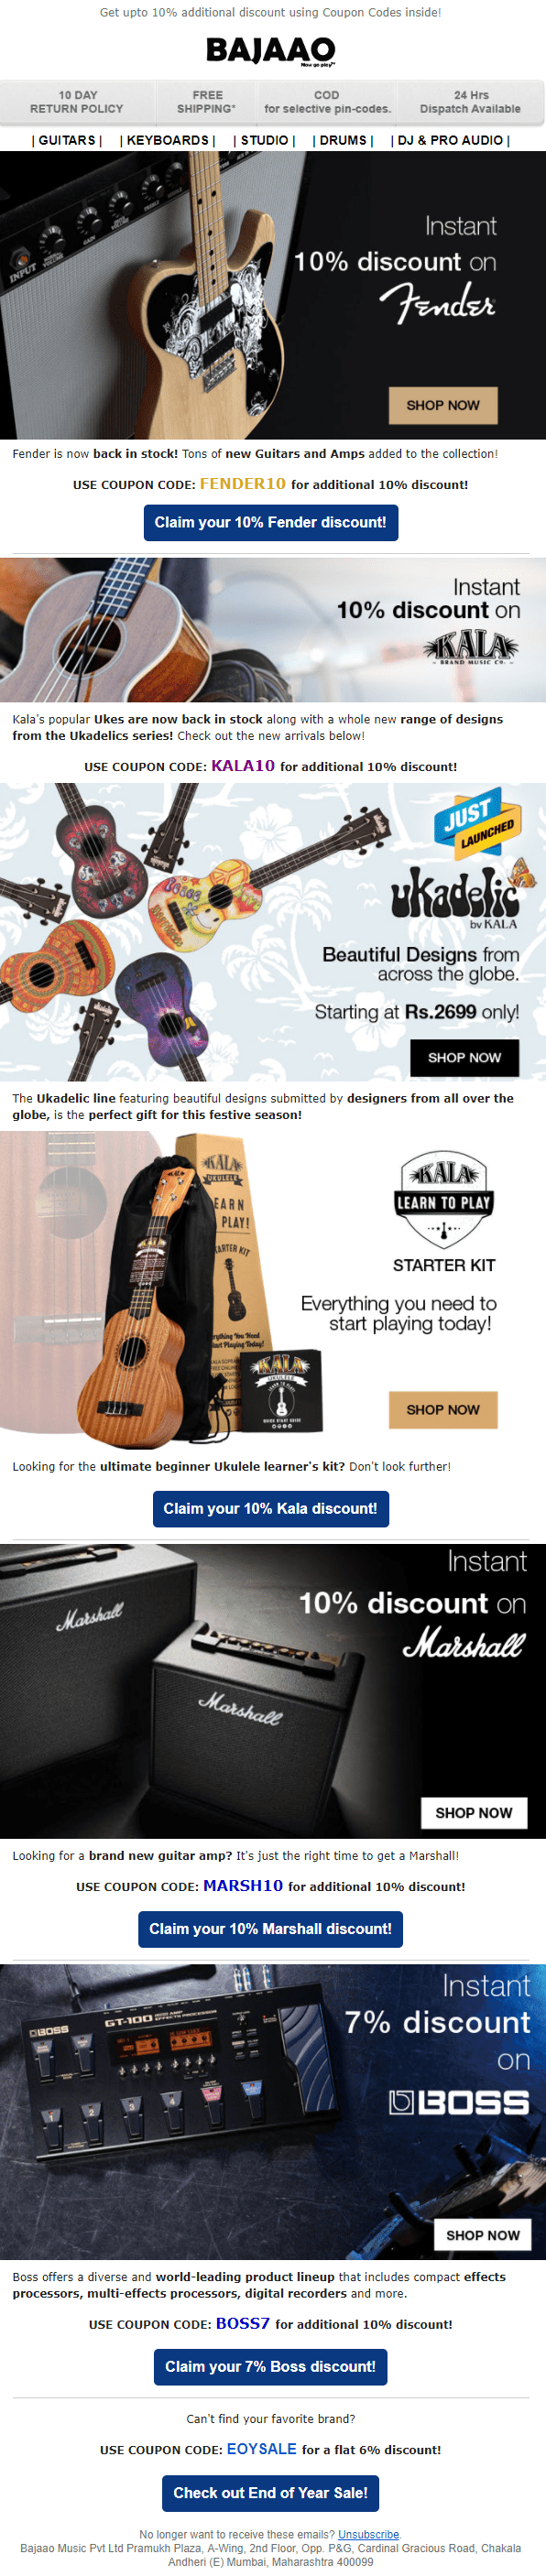 bajaao guitars cta call to action marketing email newsletter